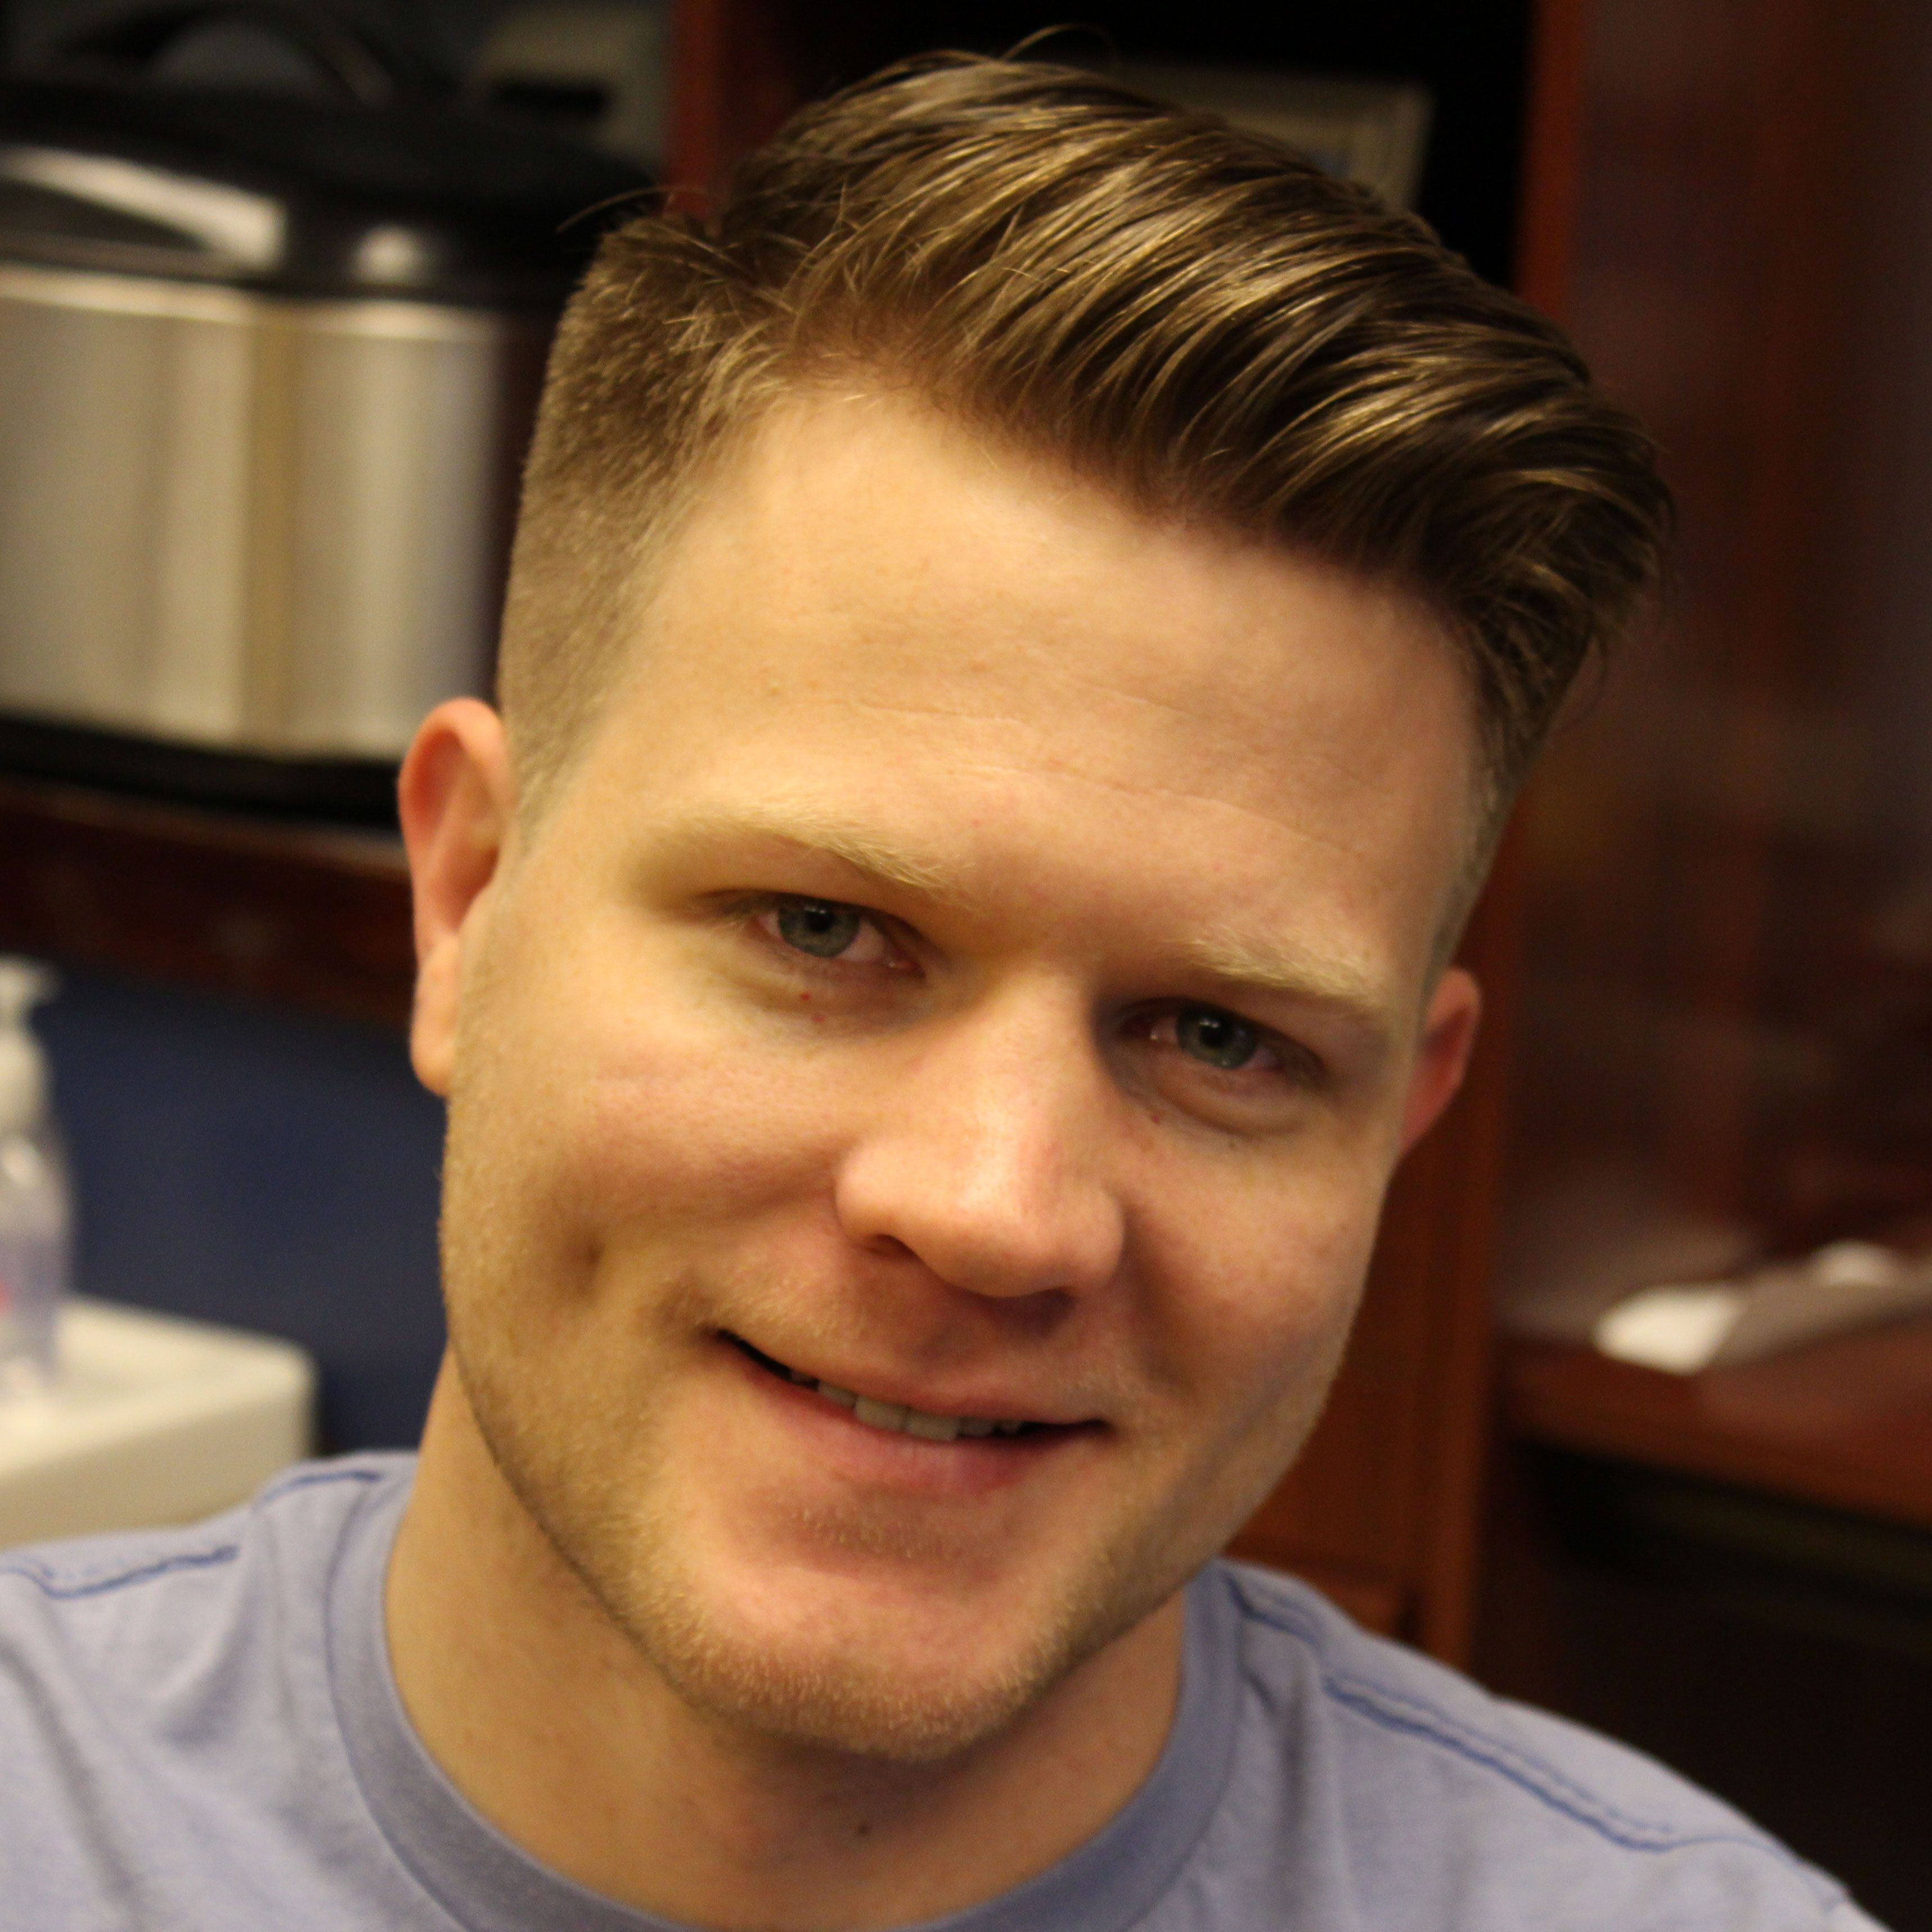 Hairstyles For Men To The Side Short Pompadour Haircut Mens Hair Pinterest Modern